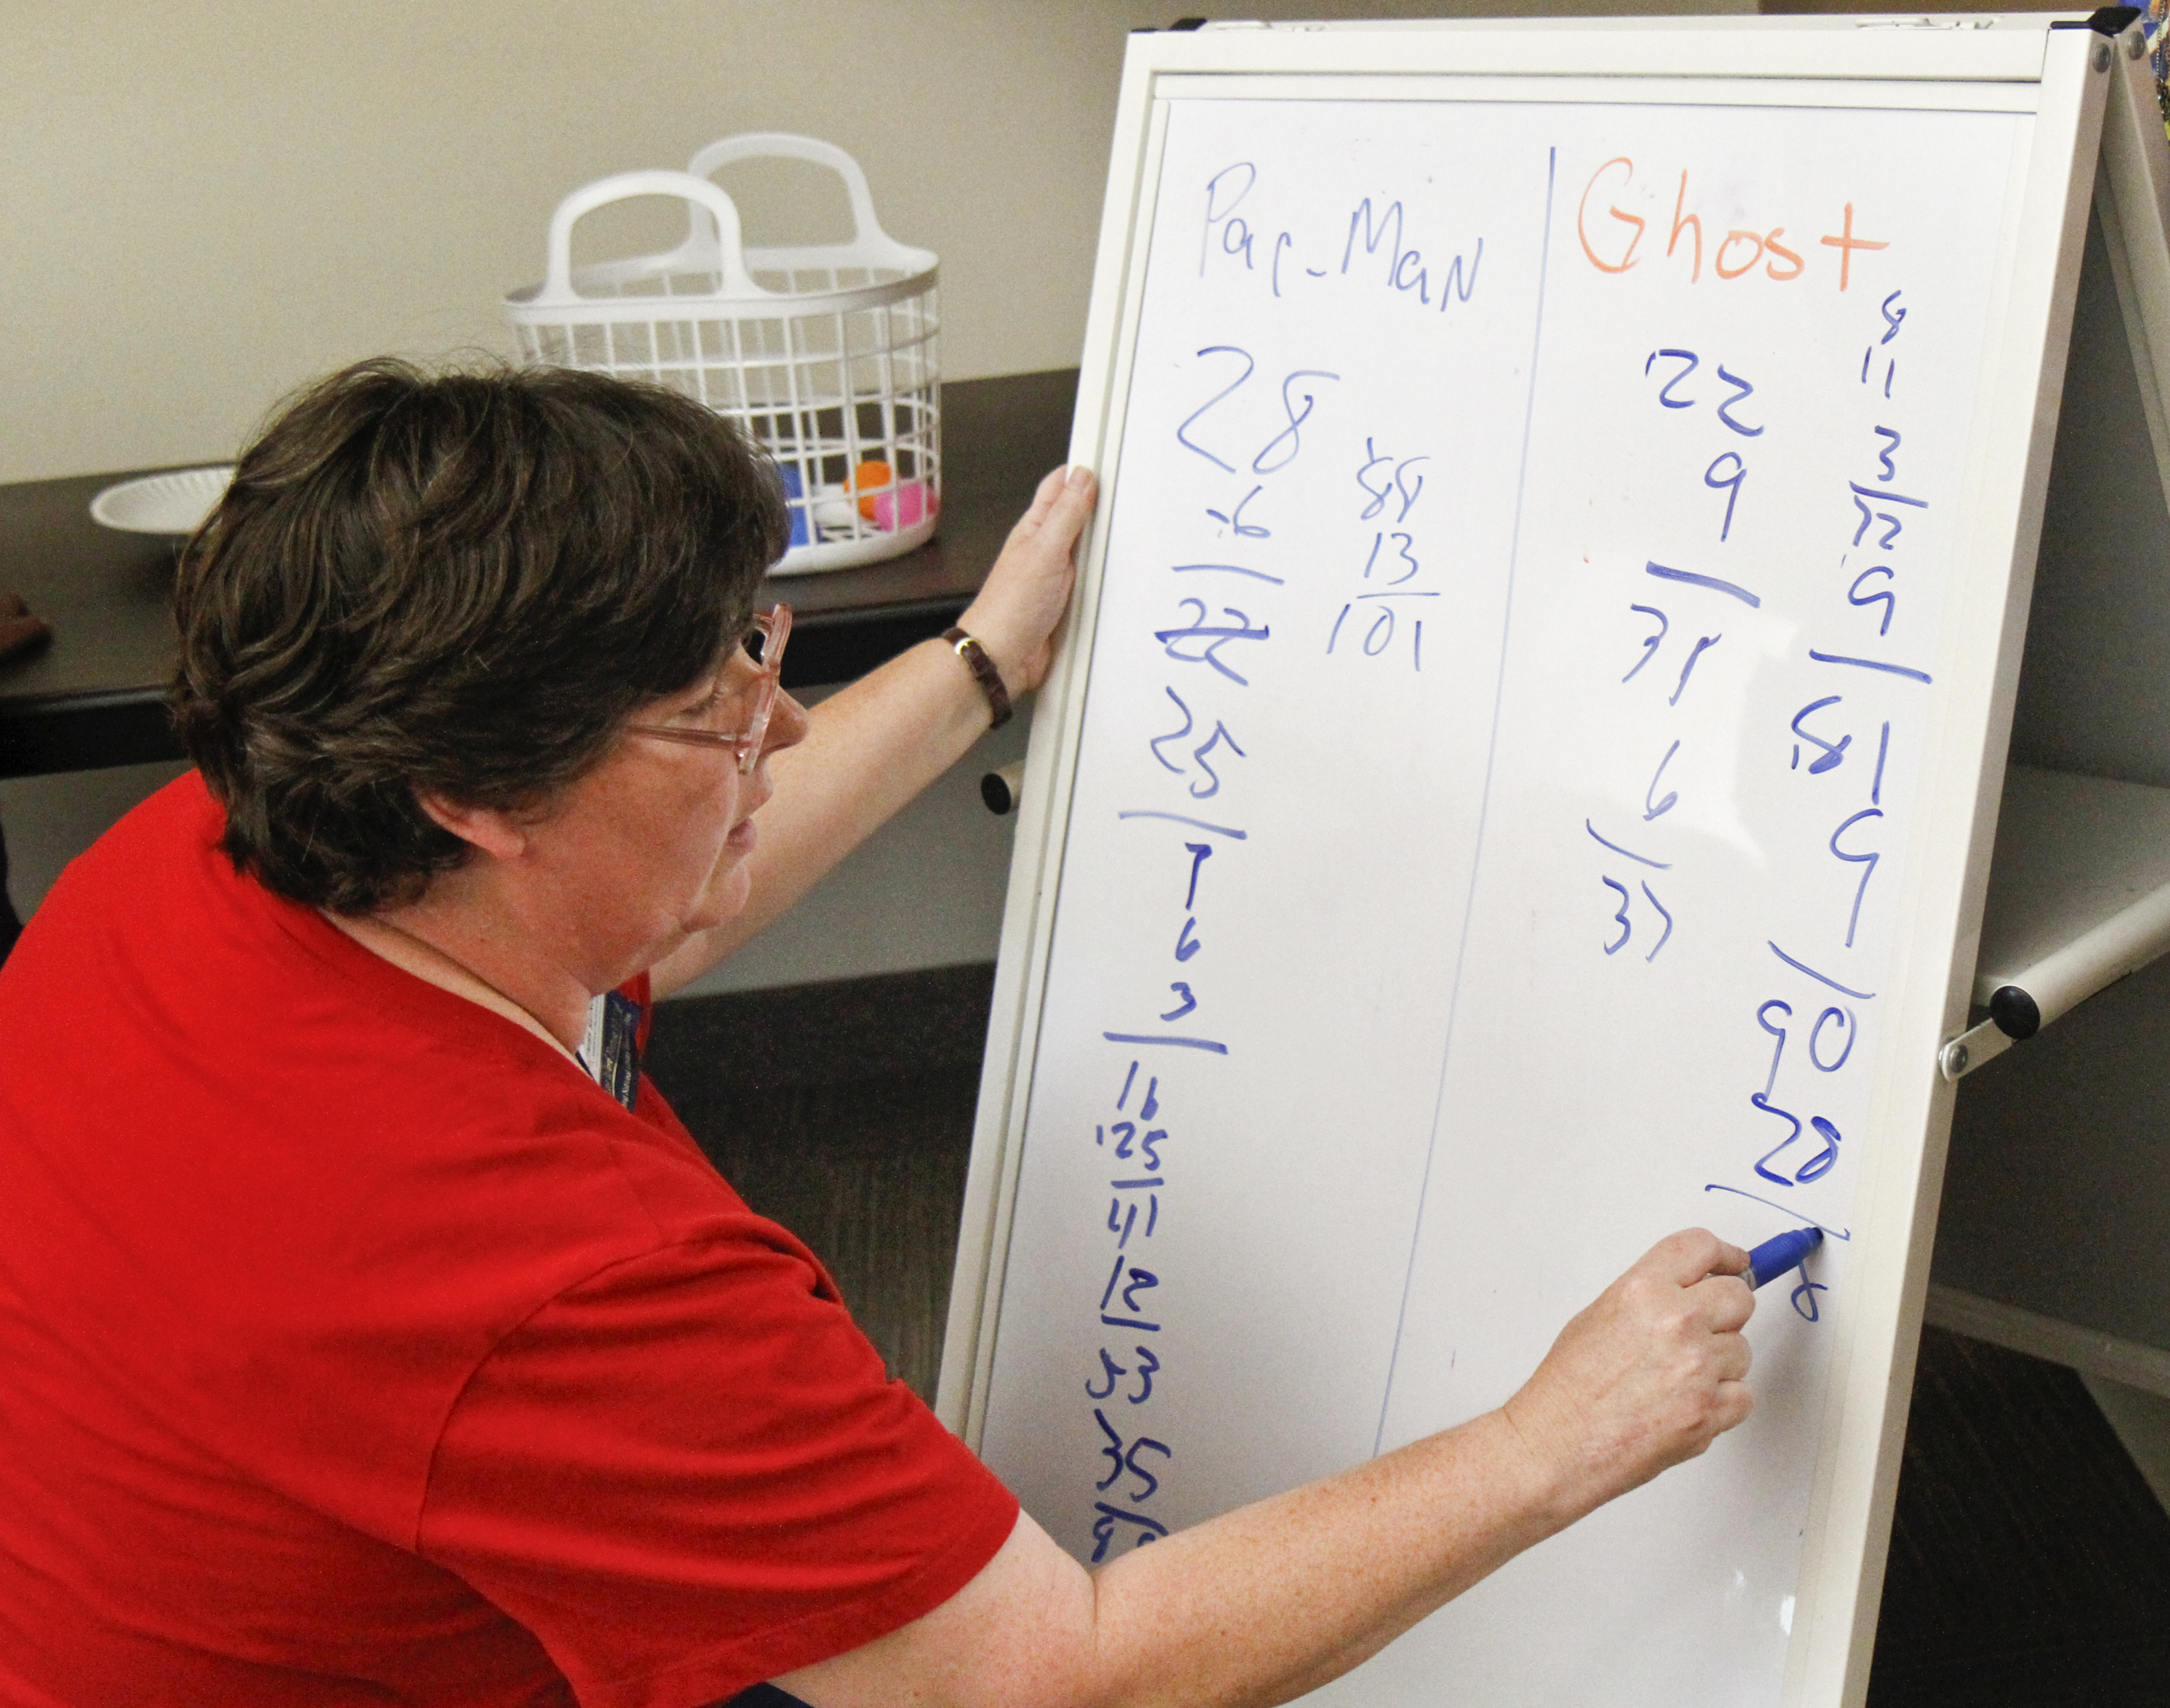 Karen Saunders of Boardman, Ohio tallies the points between the Pacman group and the Ghost group during the 'Live Pacman' game hosted by the Boardman Library on August 9, 2012.